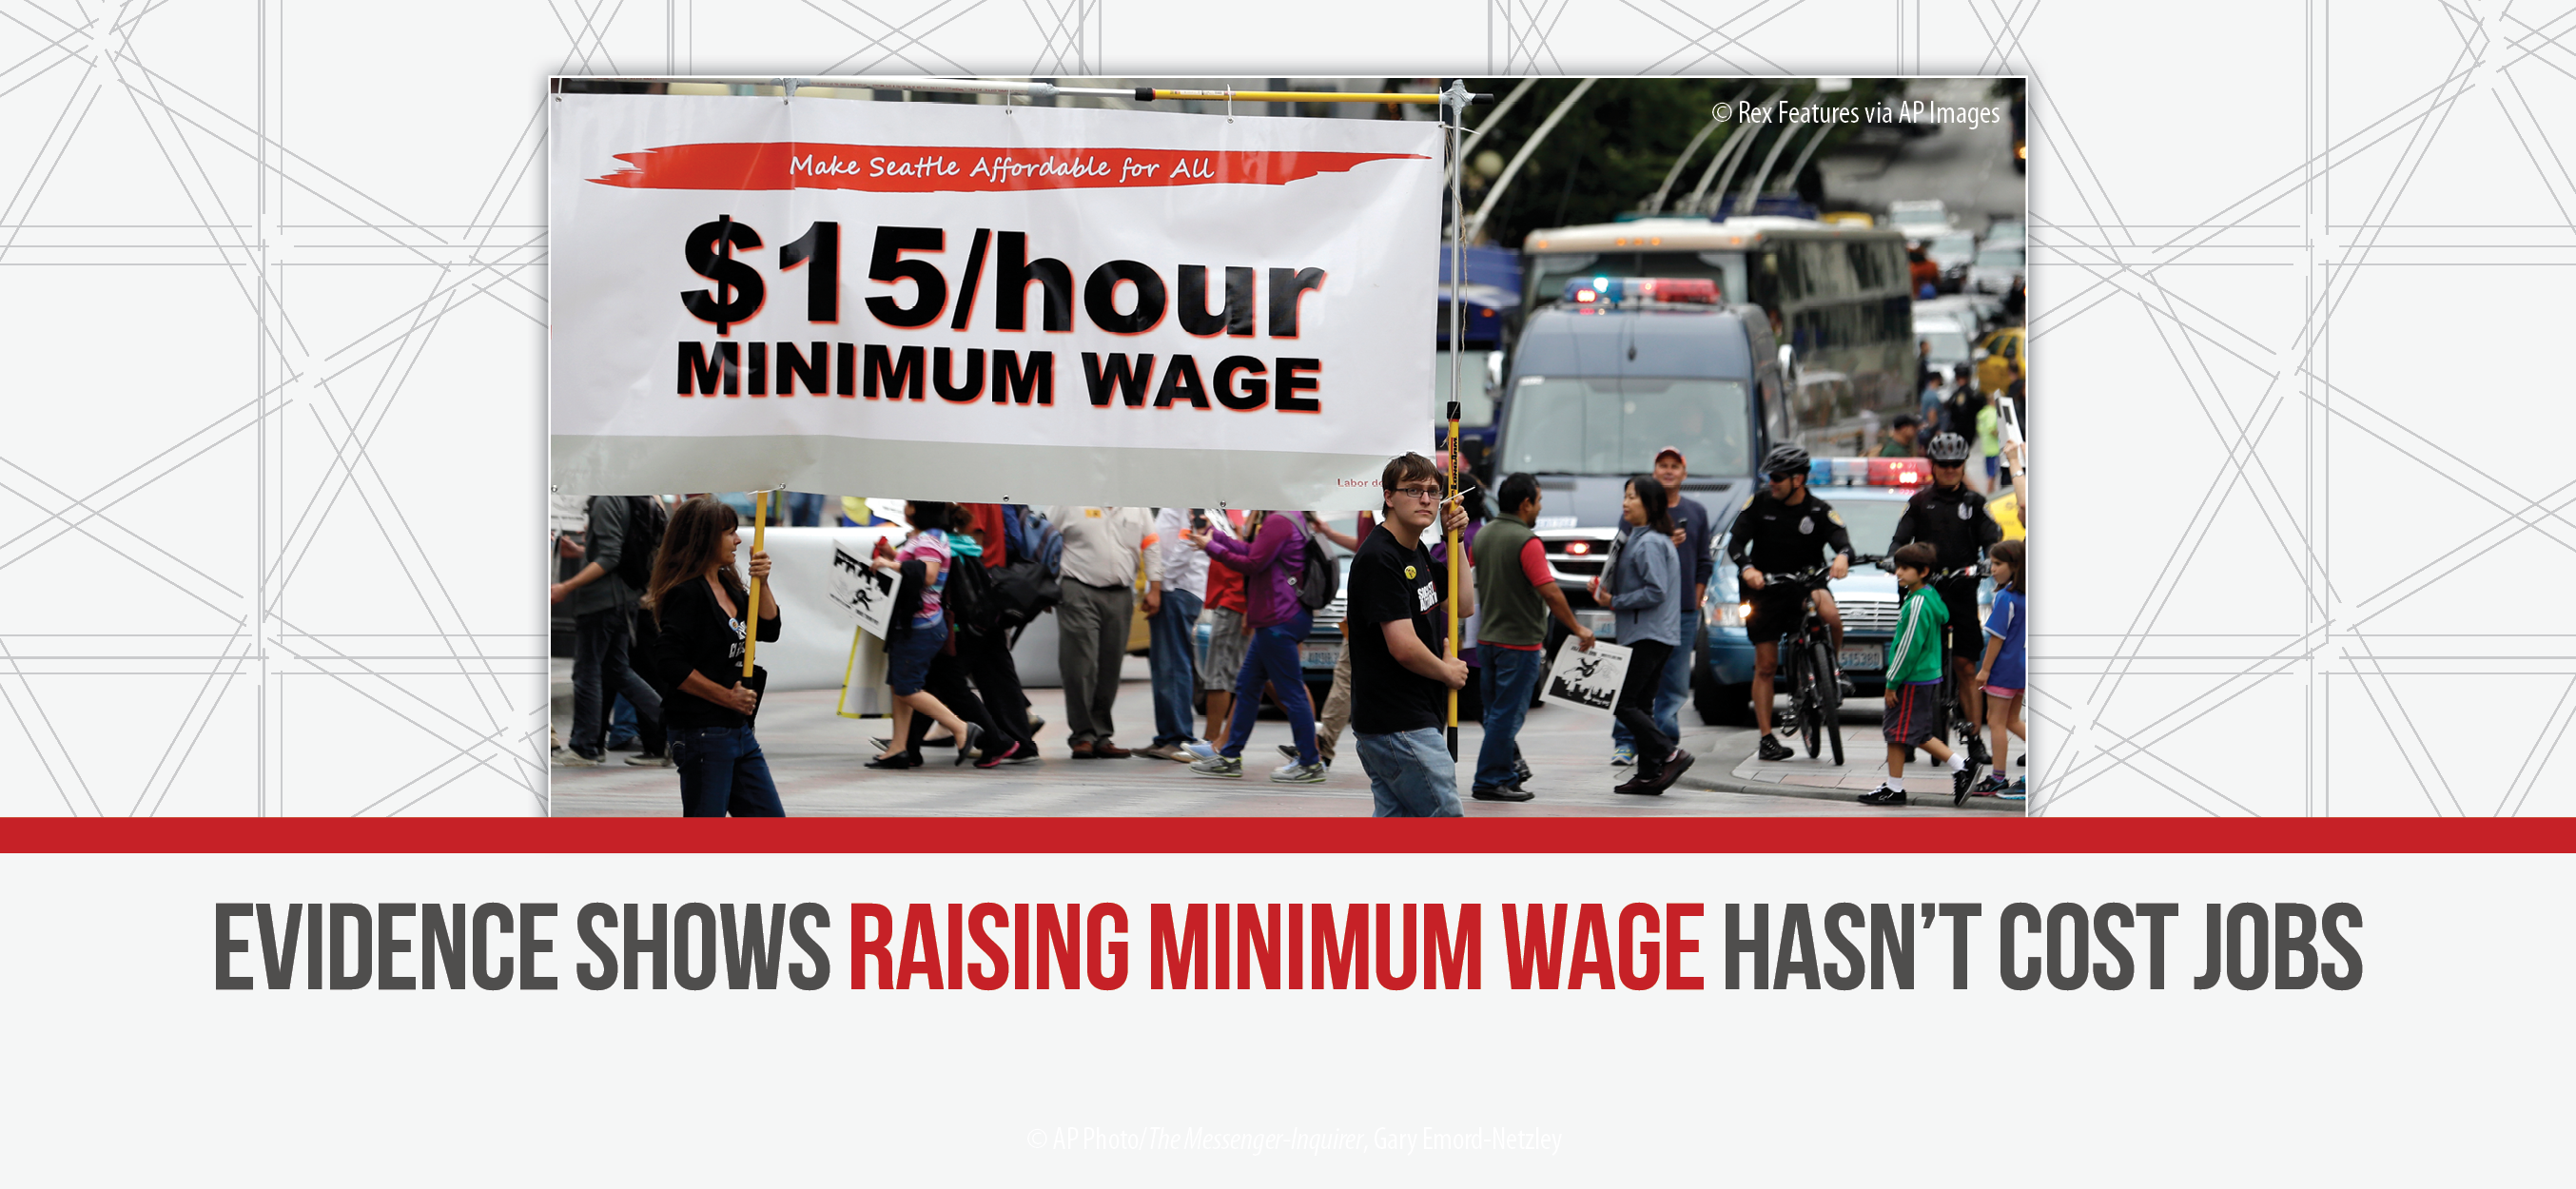 003 2014 Mar Apr Images5 Essay Example Why Should Minimum Wage Unusual Be Raised We Raise Not Increase Full